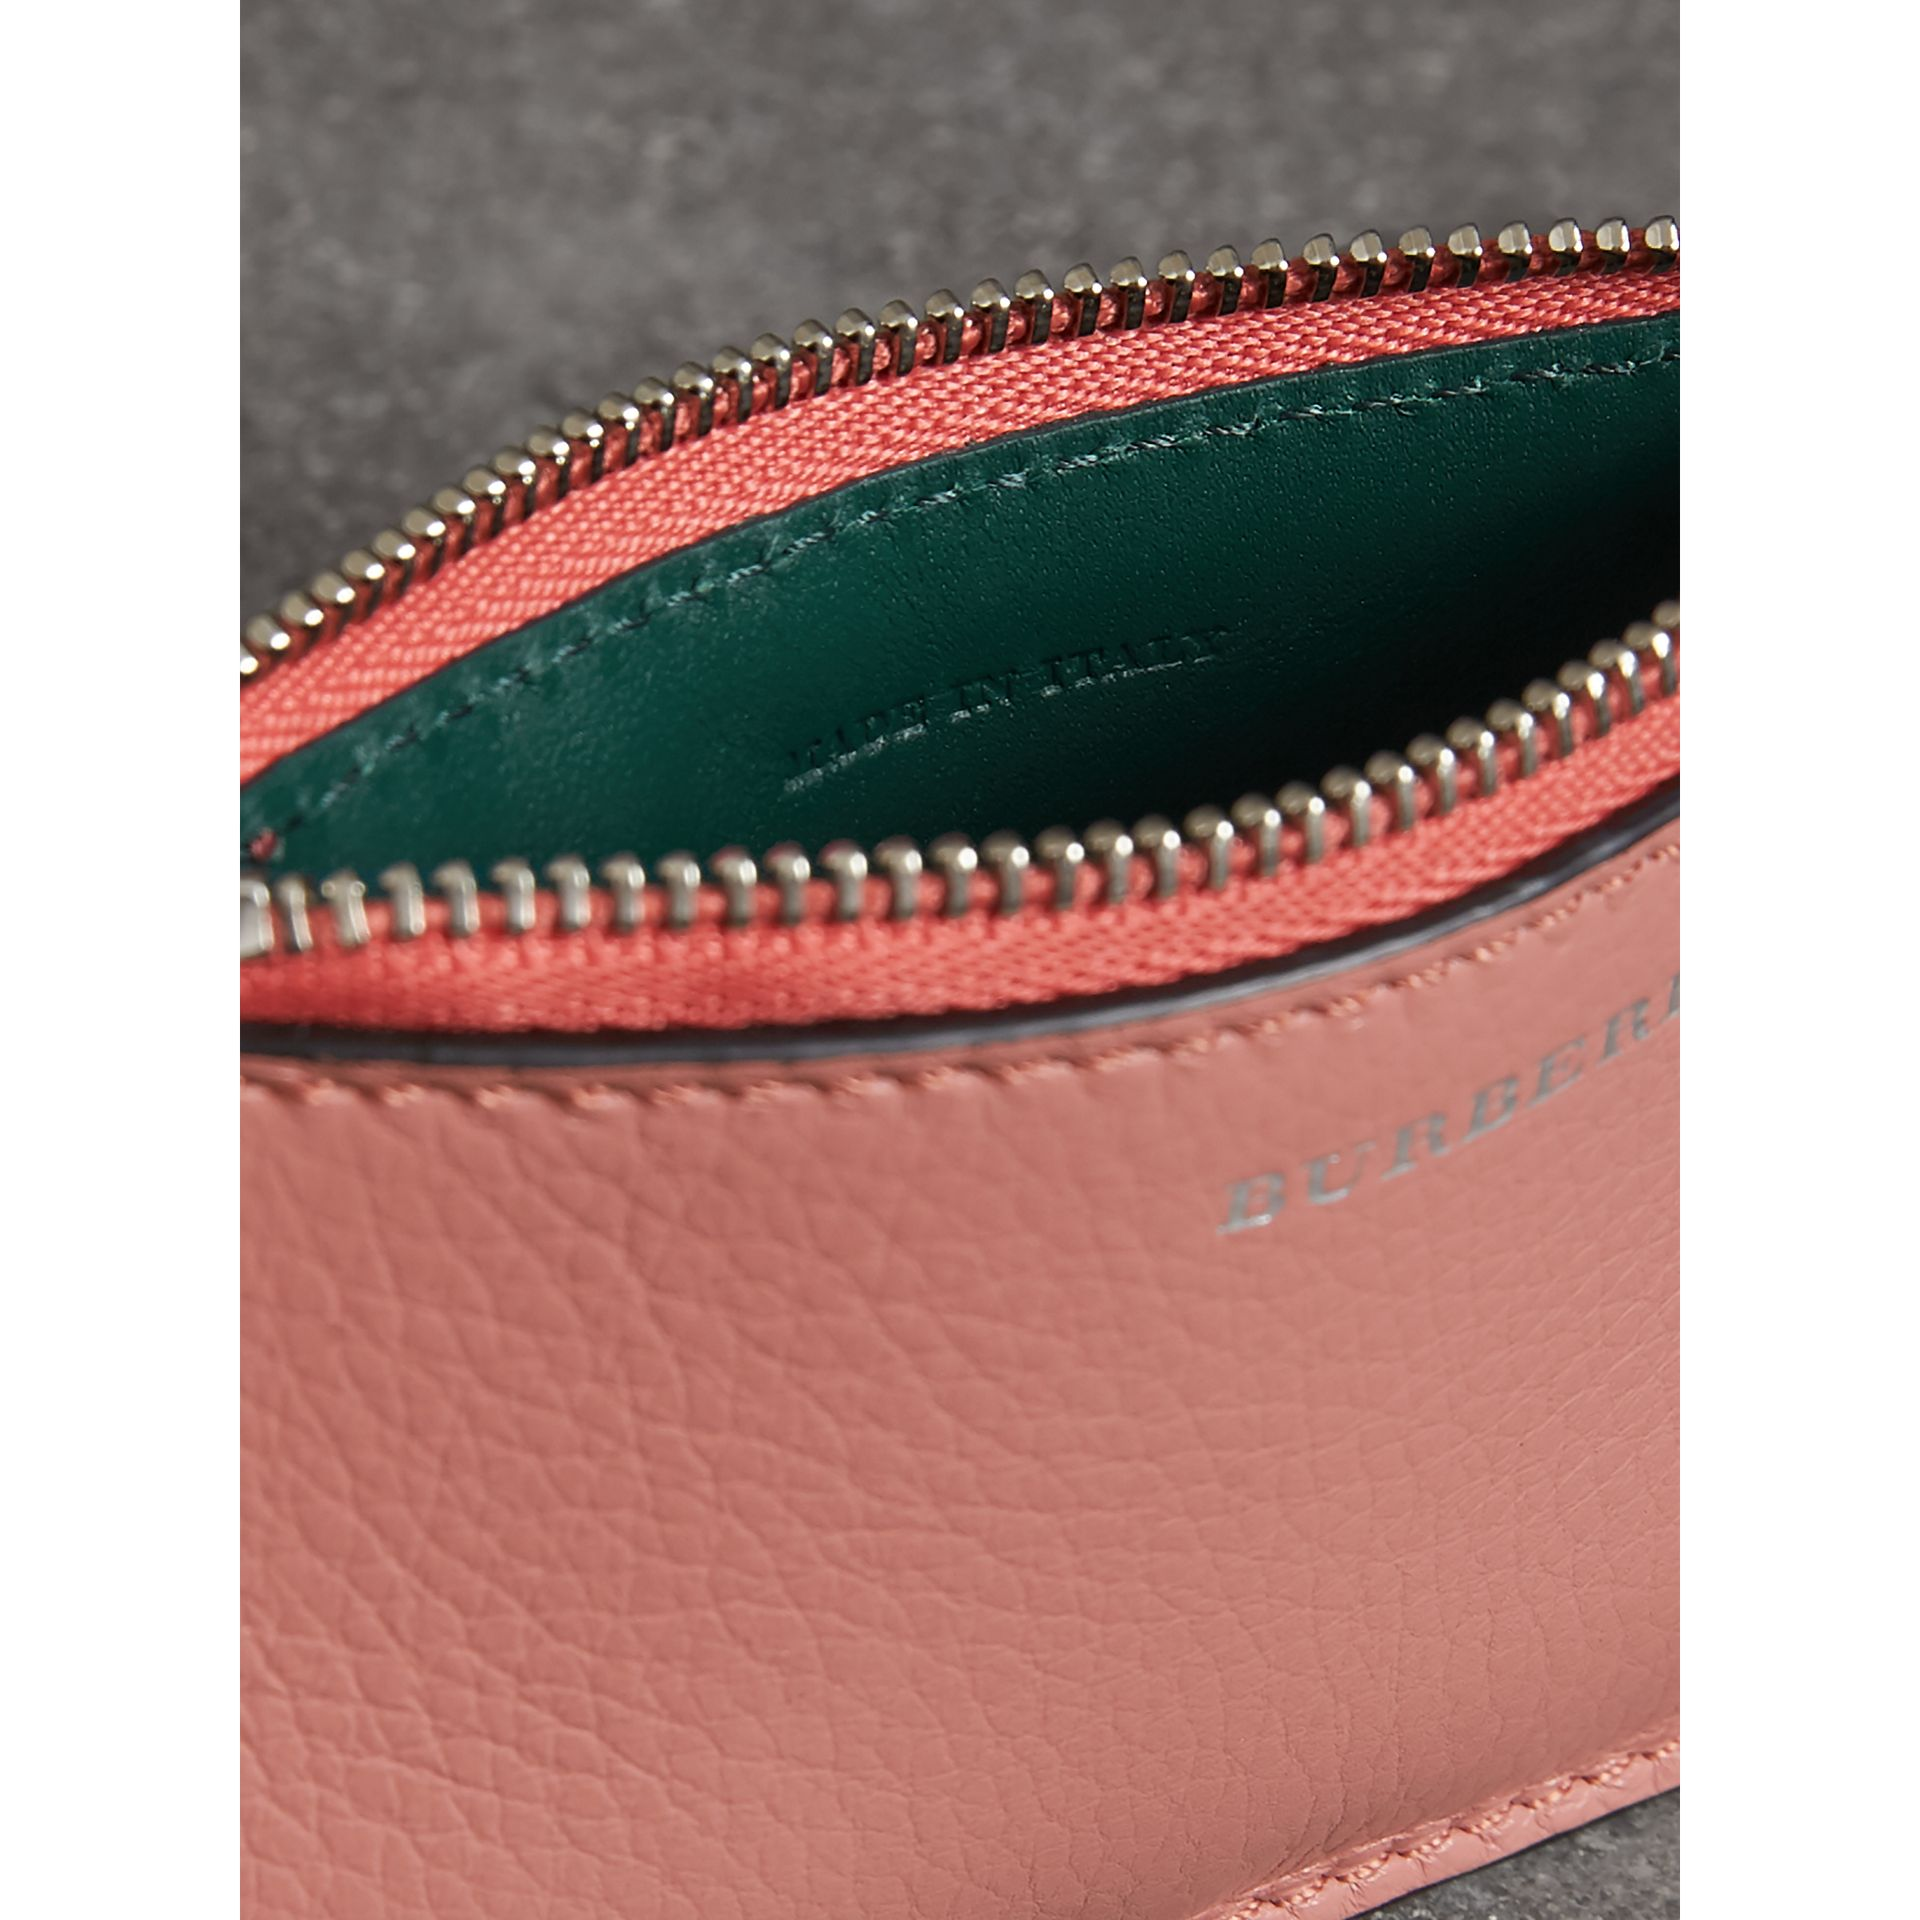 Two-tone Leather Zip Card Case in Dusty Rose - Women | Burberry Canada - gallery image 3